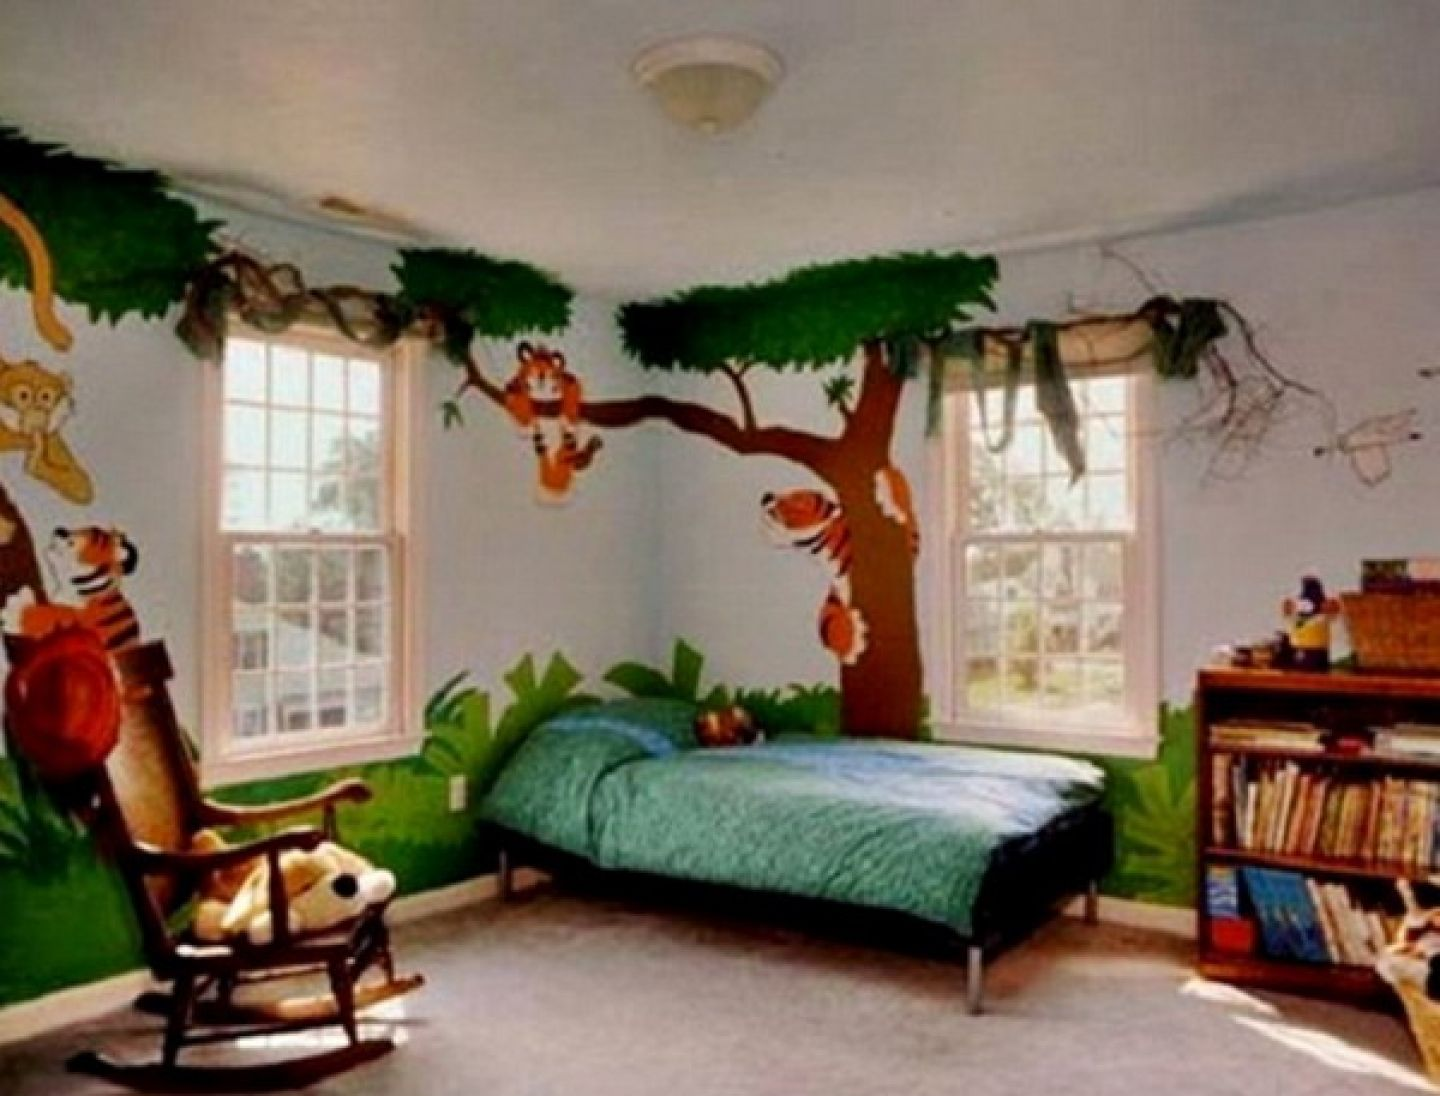 Kids Bedroom Tree tree wall mural for kids bedroom | rialno designs | baby room